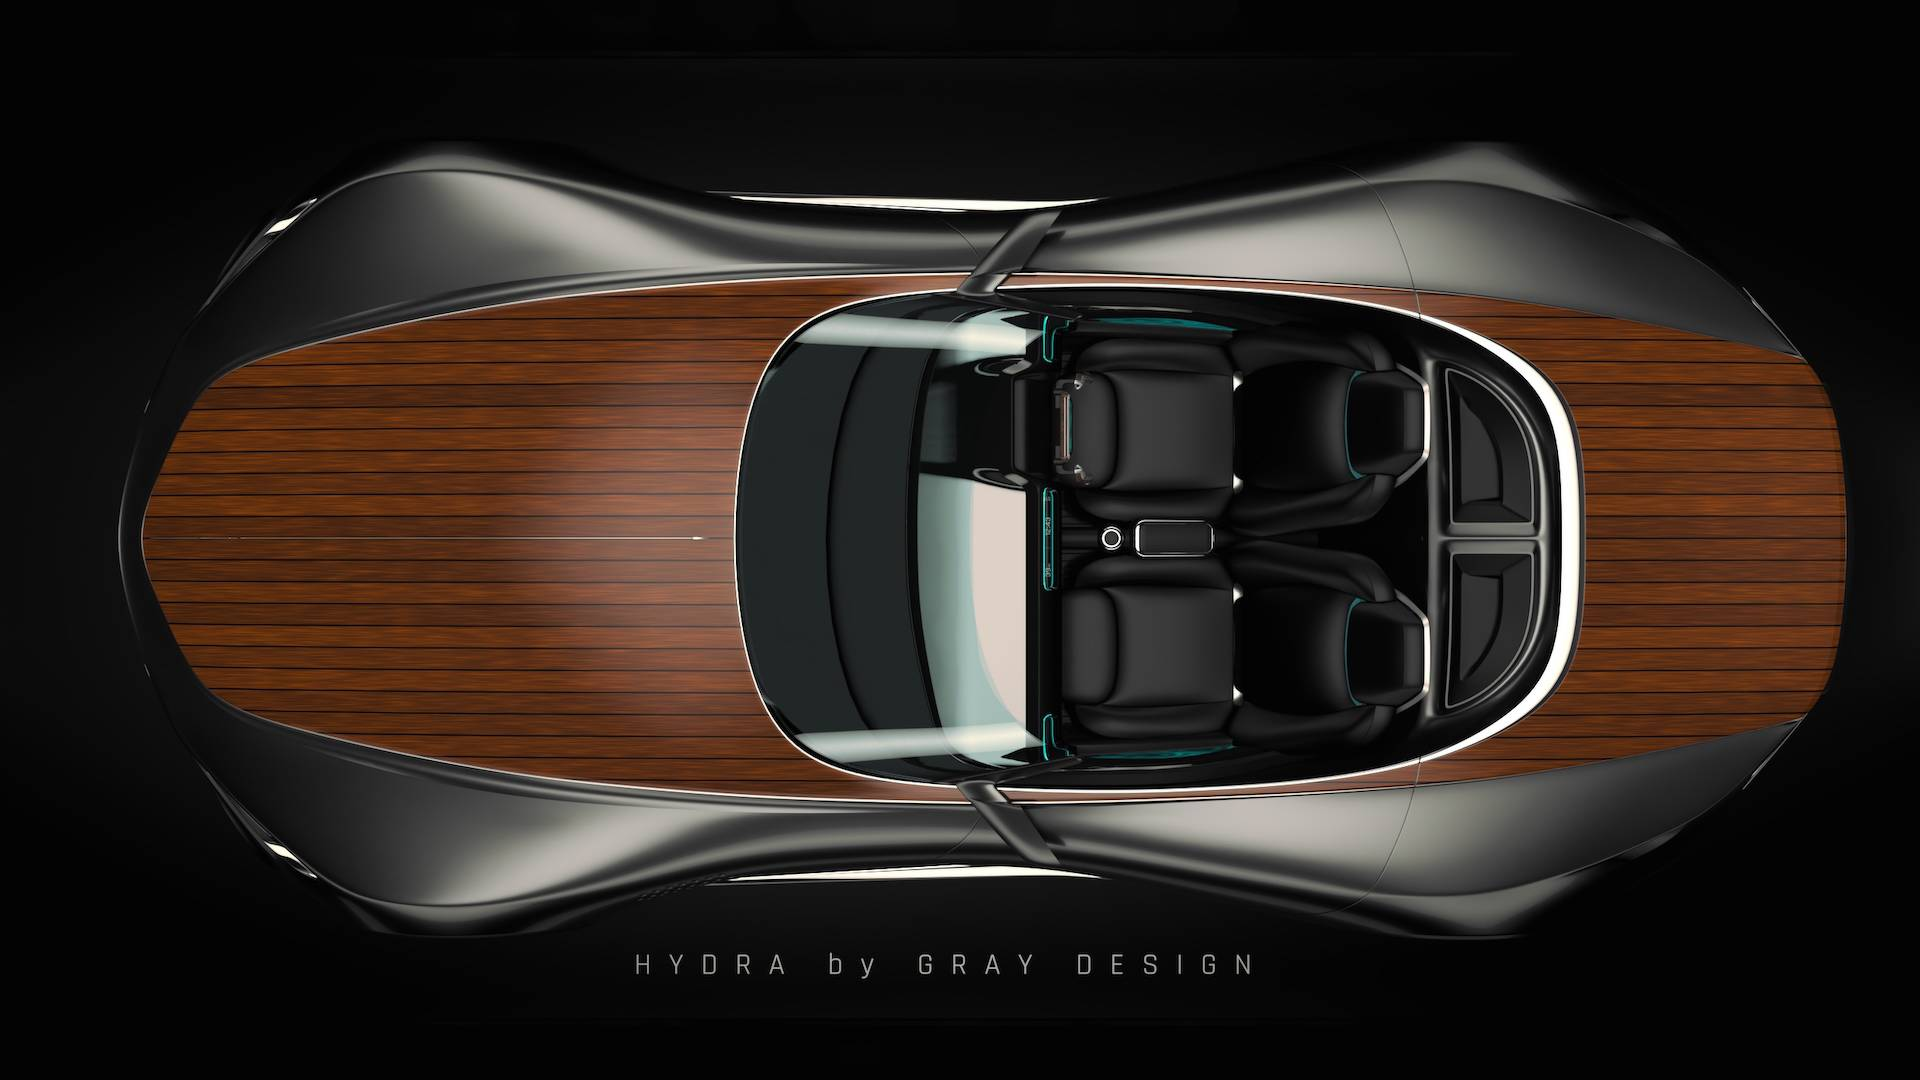 gray-design-proposes-a-meeting-of-ages-in-woody-supercar-4